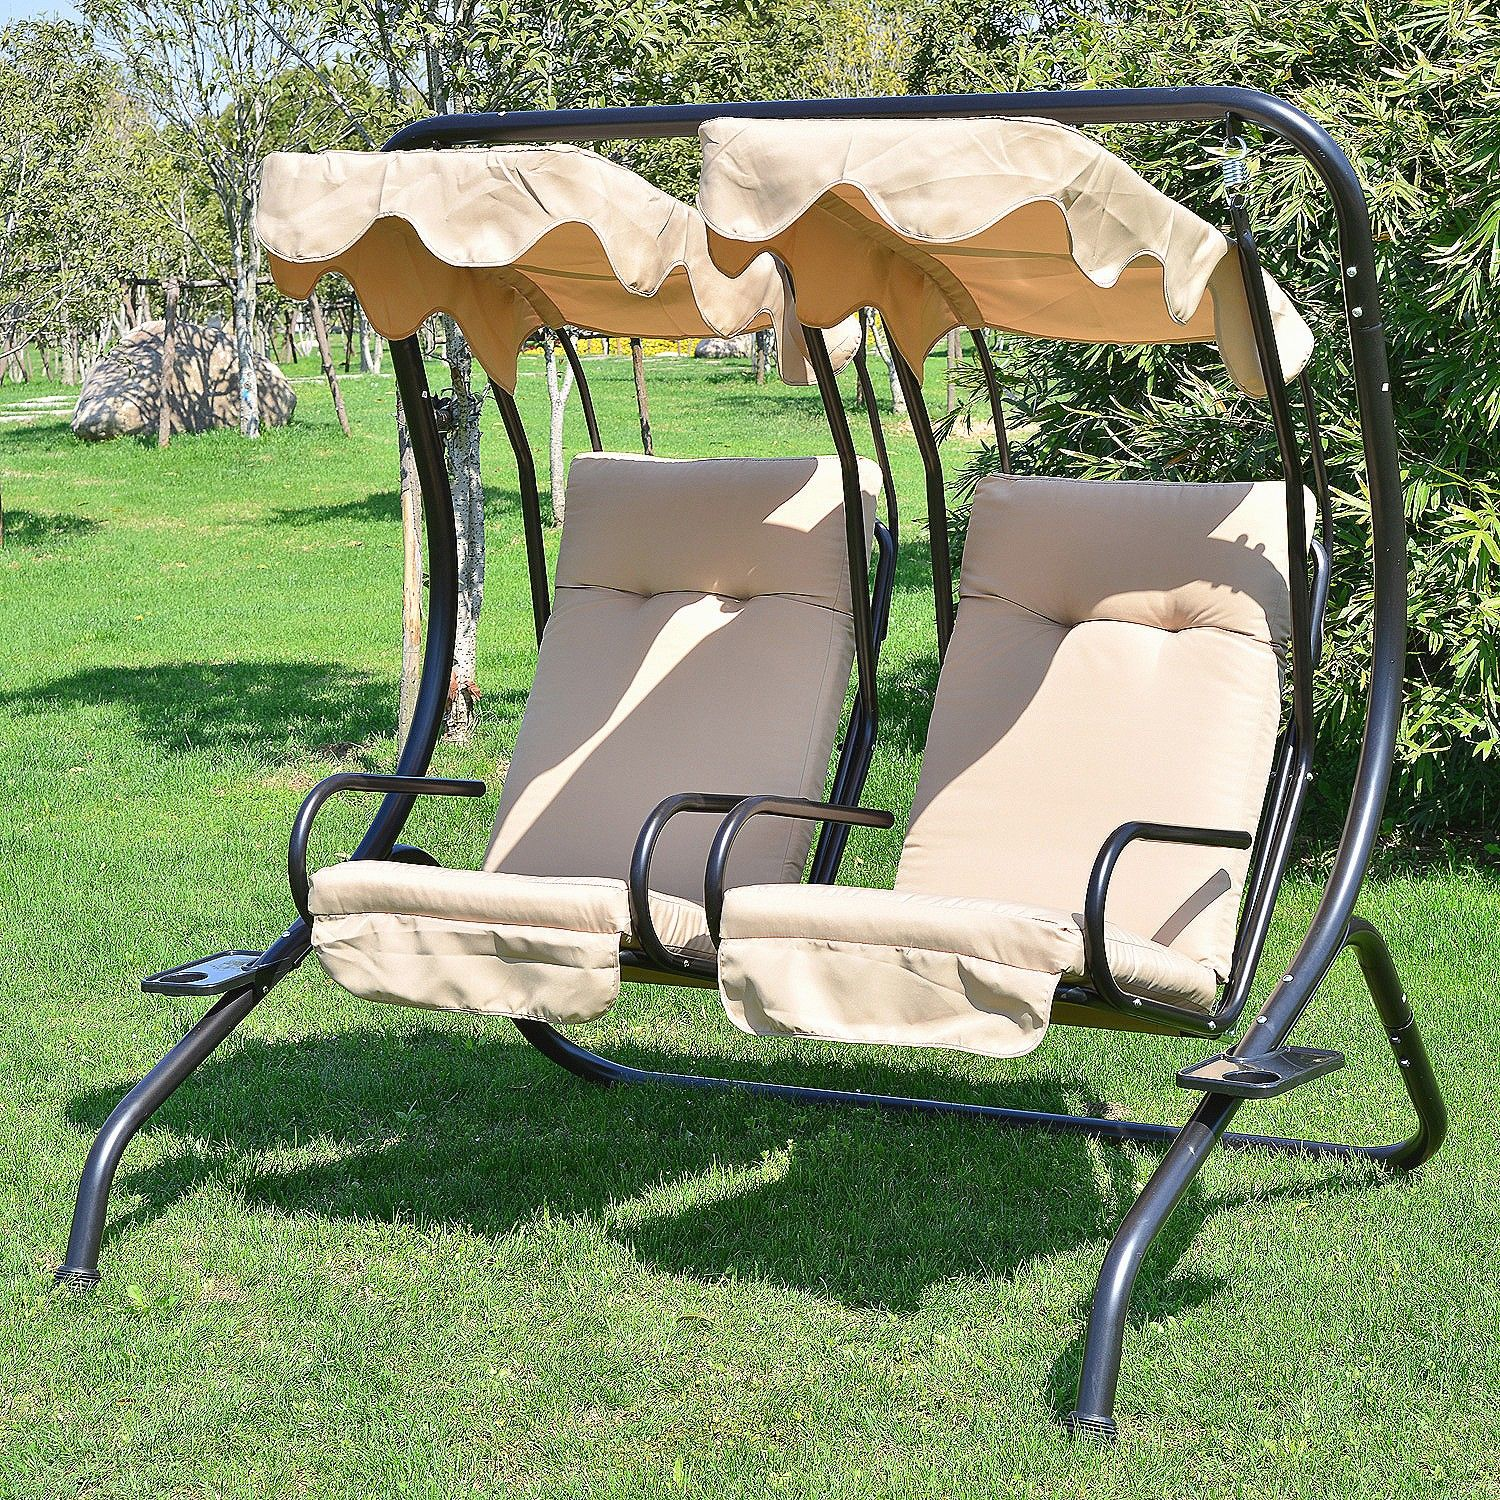 Outdoor Patio Swing Dimensions 1 8 X 1 5 X 2 M This Outdoor Swing